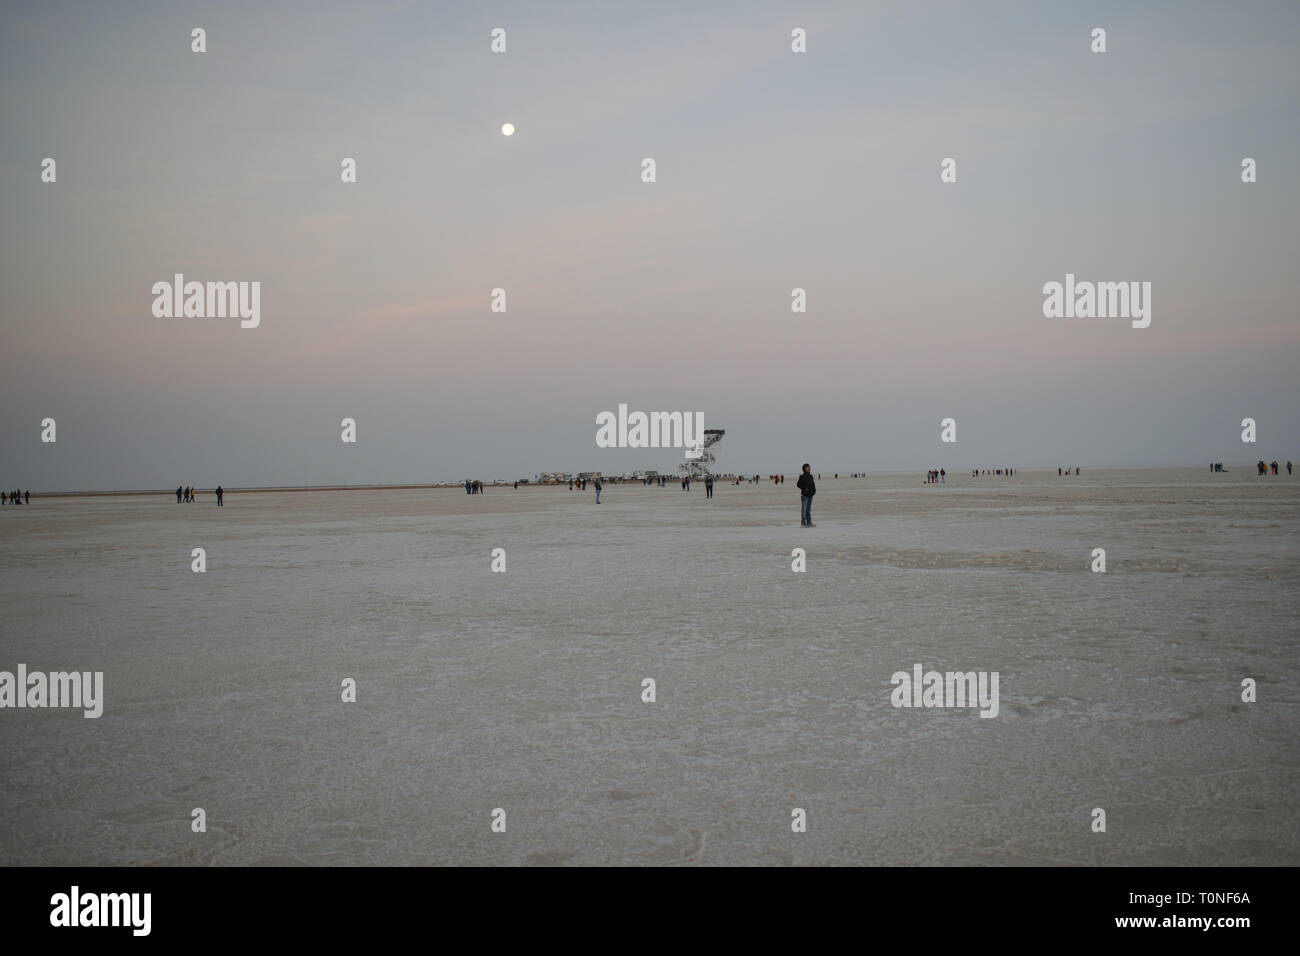 White dessert at Rann of Kutch, Gujarat, India - Stock Image